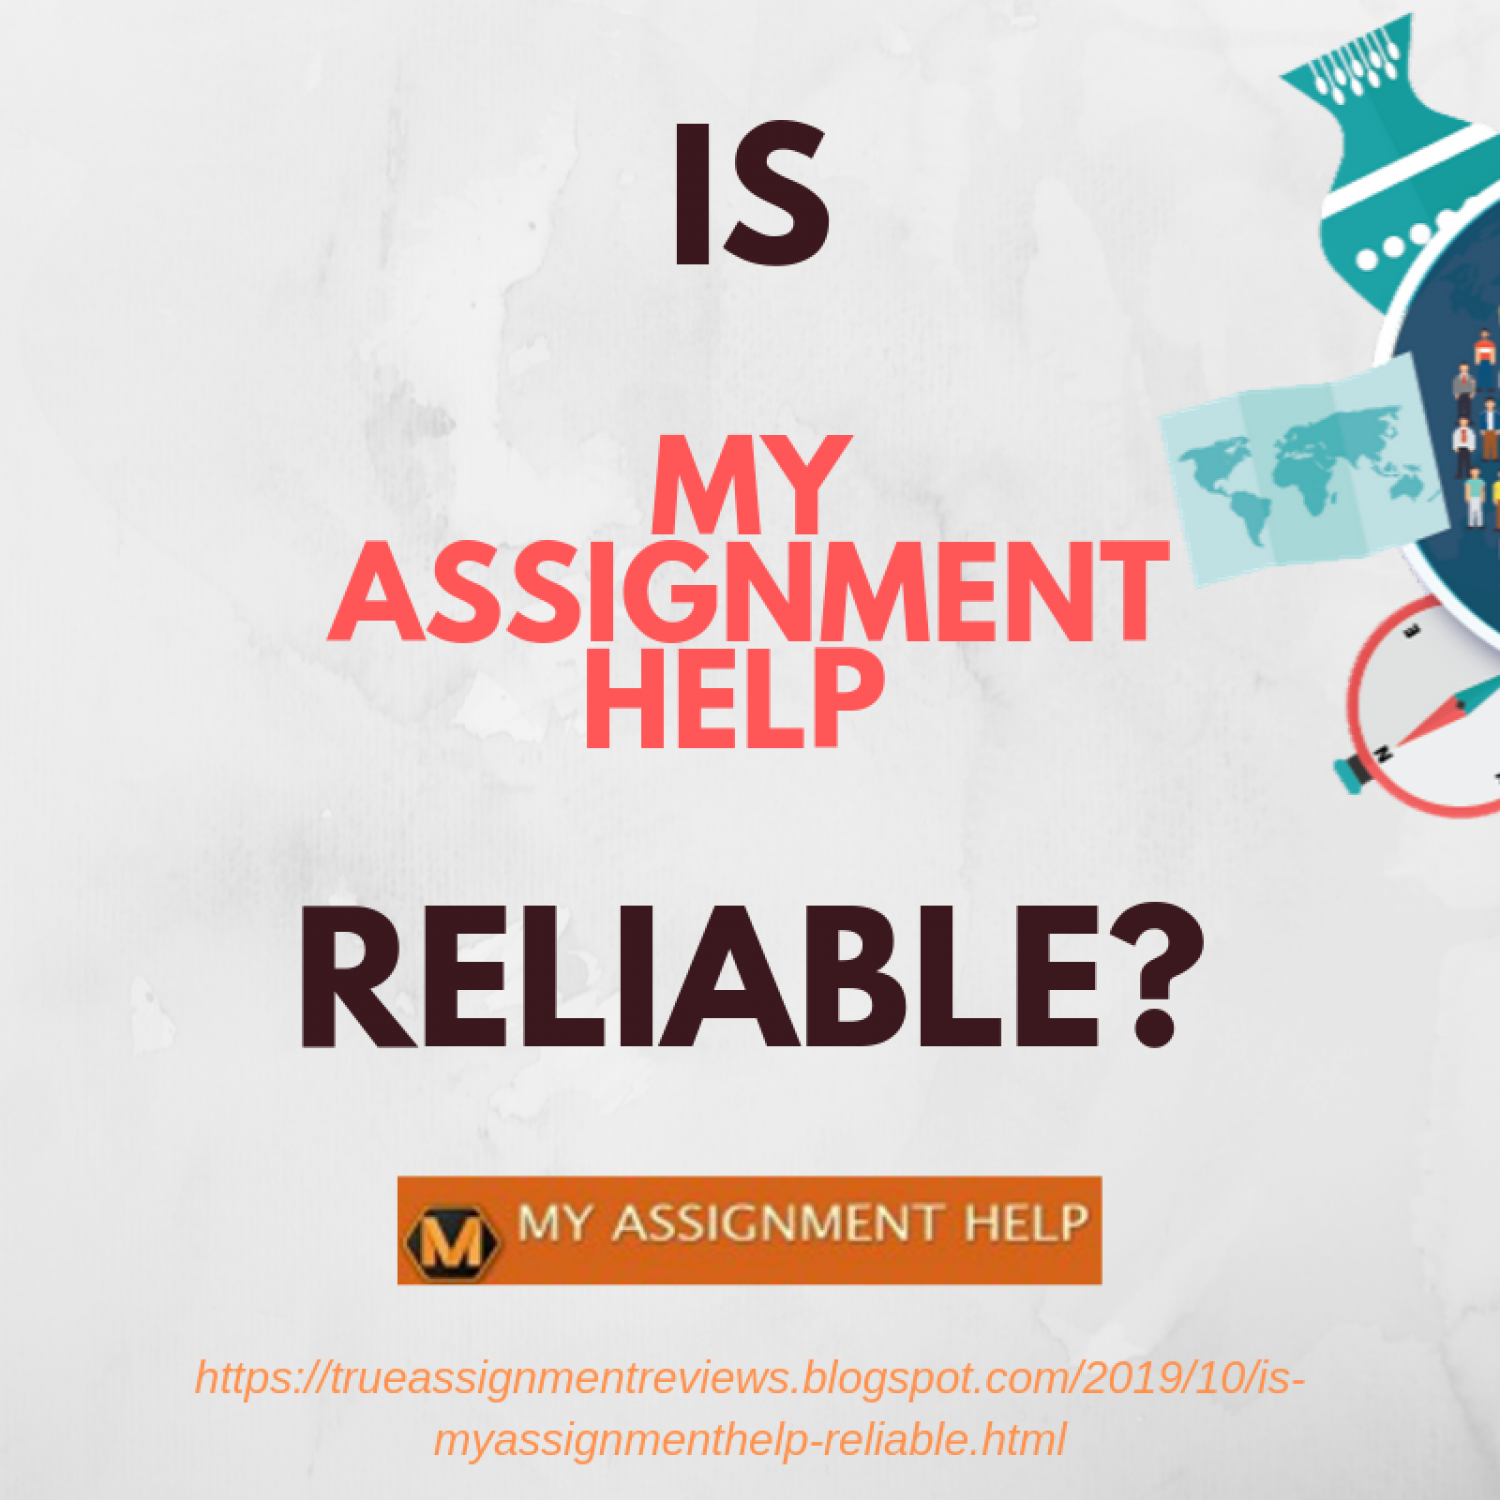 Is MyAssignmentHelp Reliable? Infographic